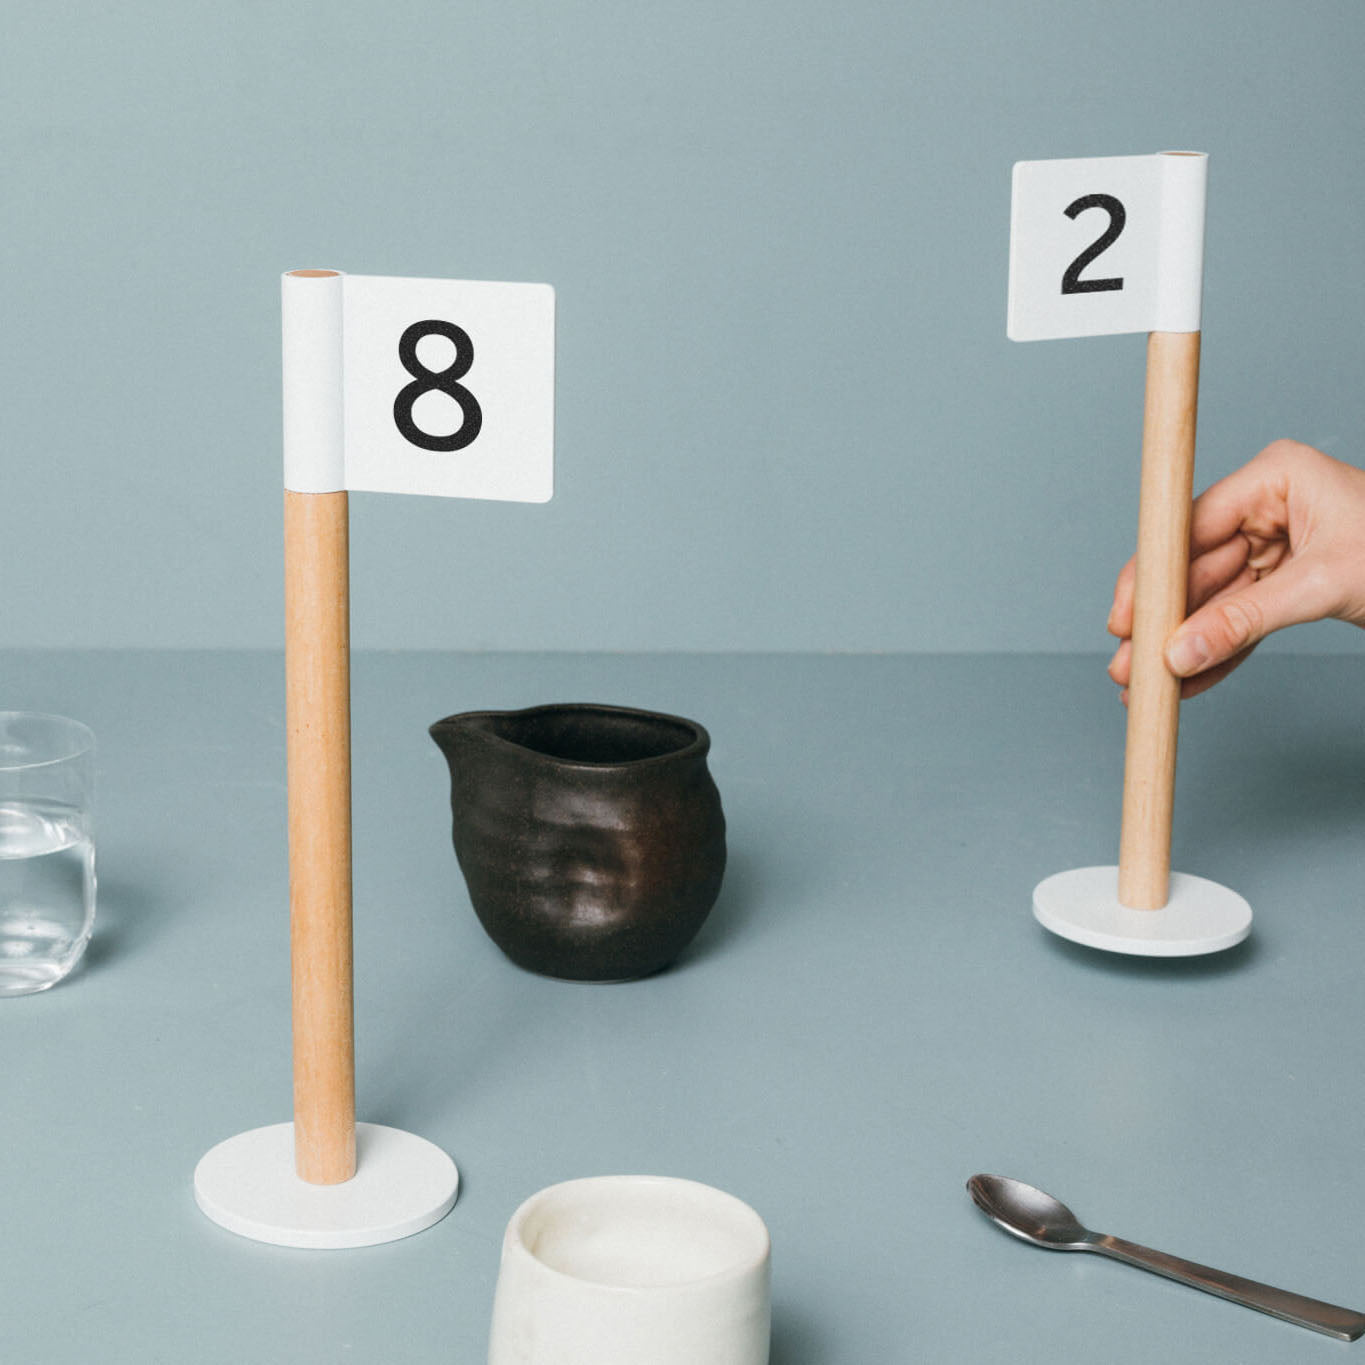 Small Table Numbers in the shape of flags, minimalist signs for restaurants and cafes made with aluminum and wood